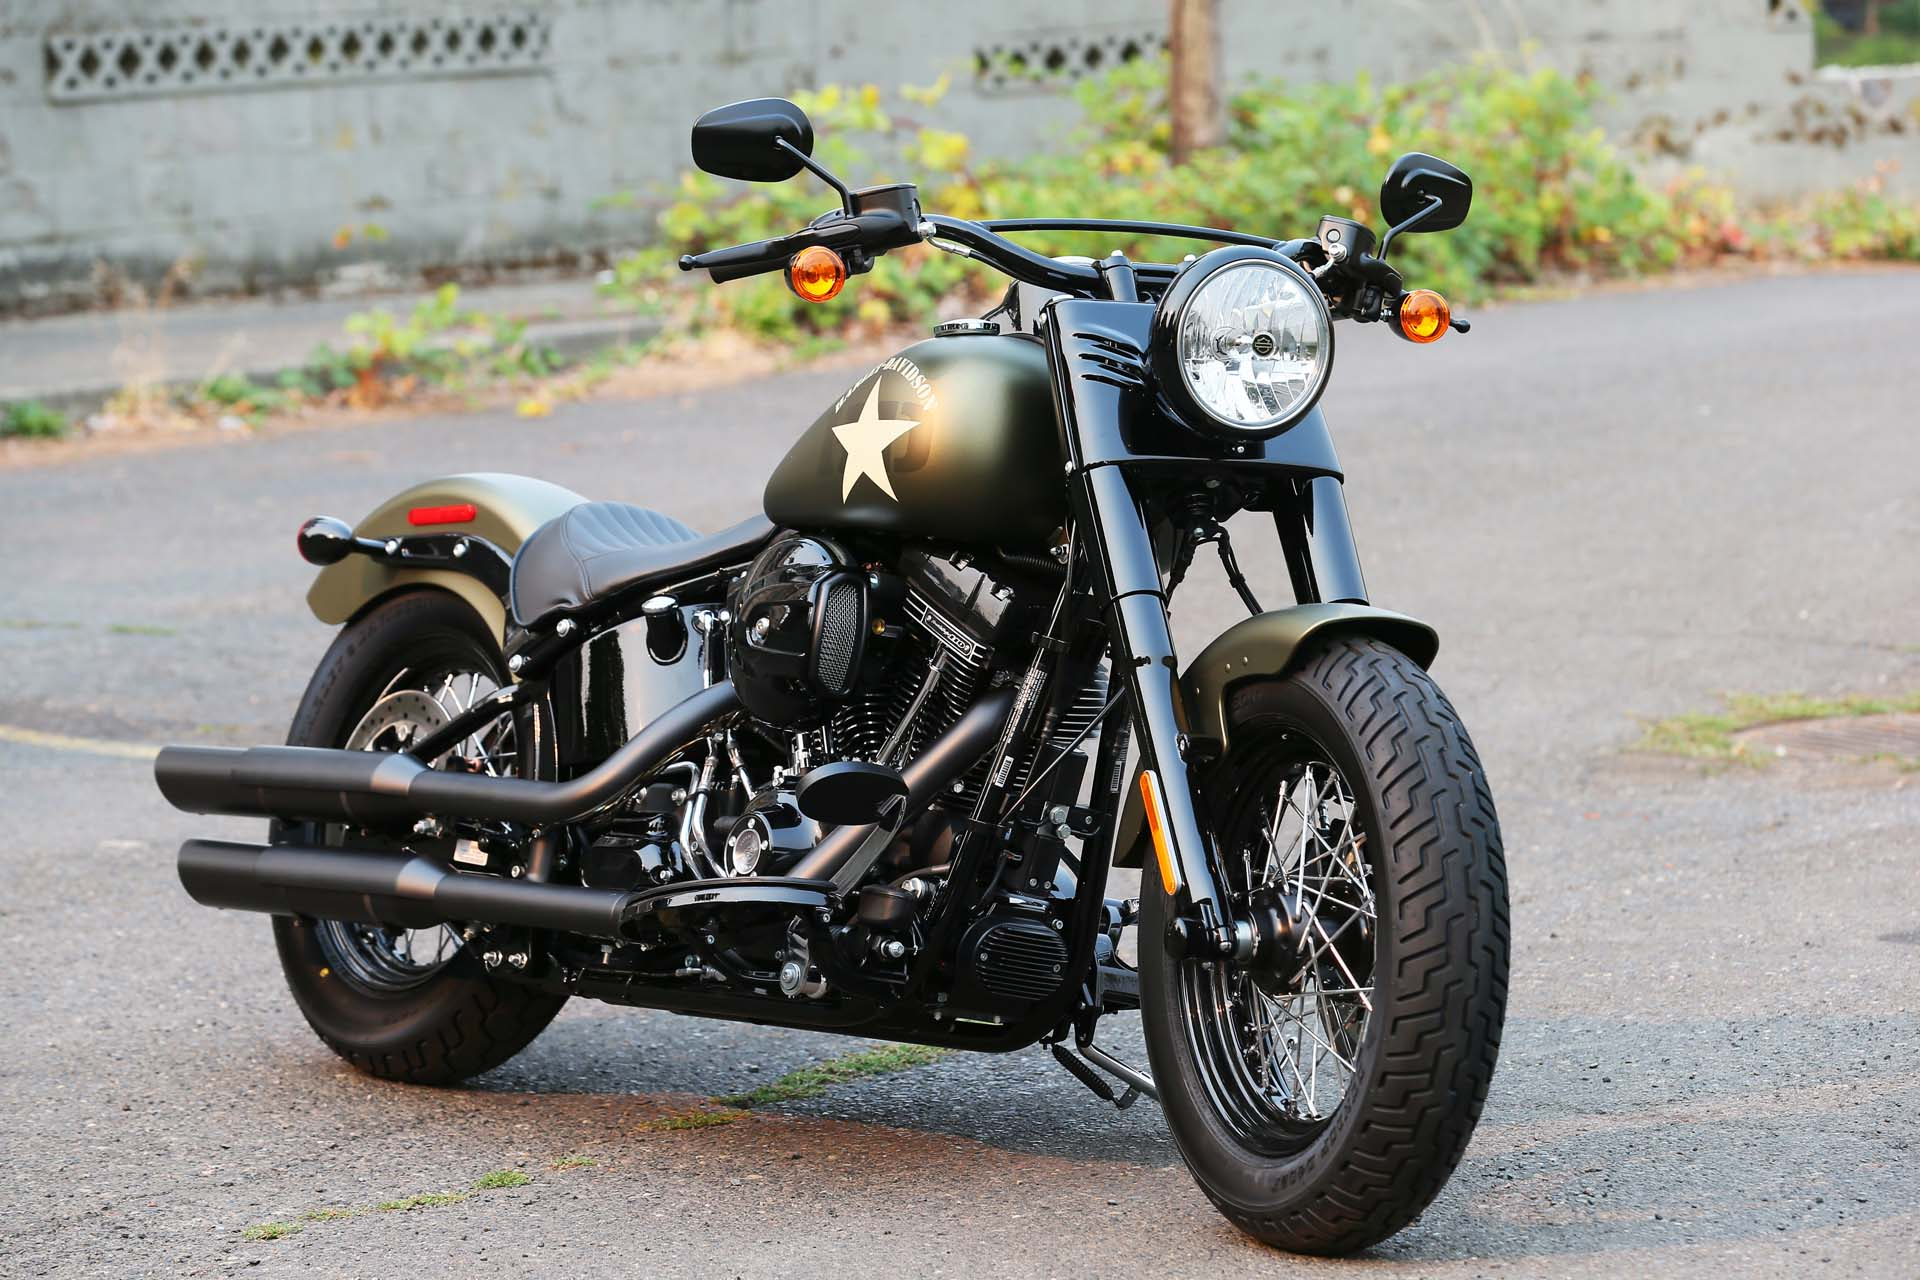 Compared to its non-S equivalent the Softail Slim S is completely blacked out; the only chrome you'll find is on the pushrod tubes and brake pedal.